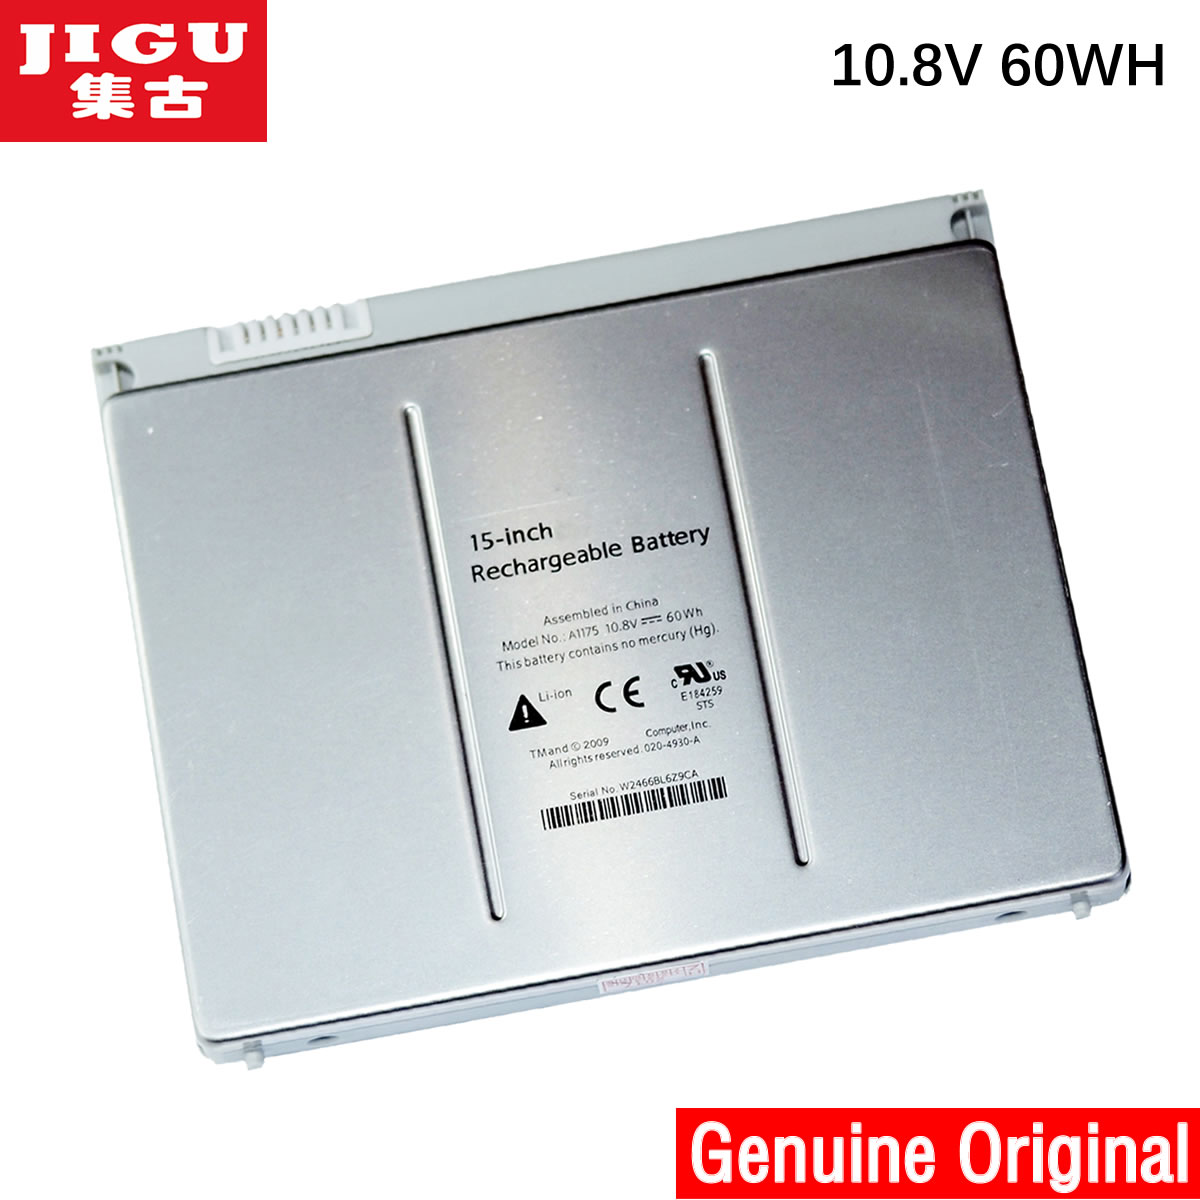 все цены на JIGU A1175 MA348 Original Laptop Battery For APPLE MacBook Pro 15